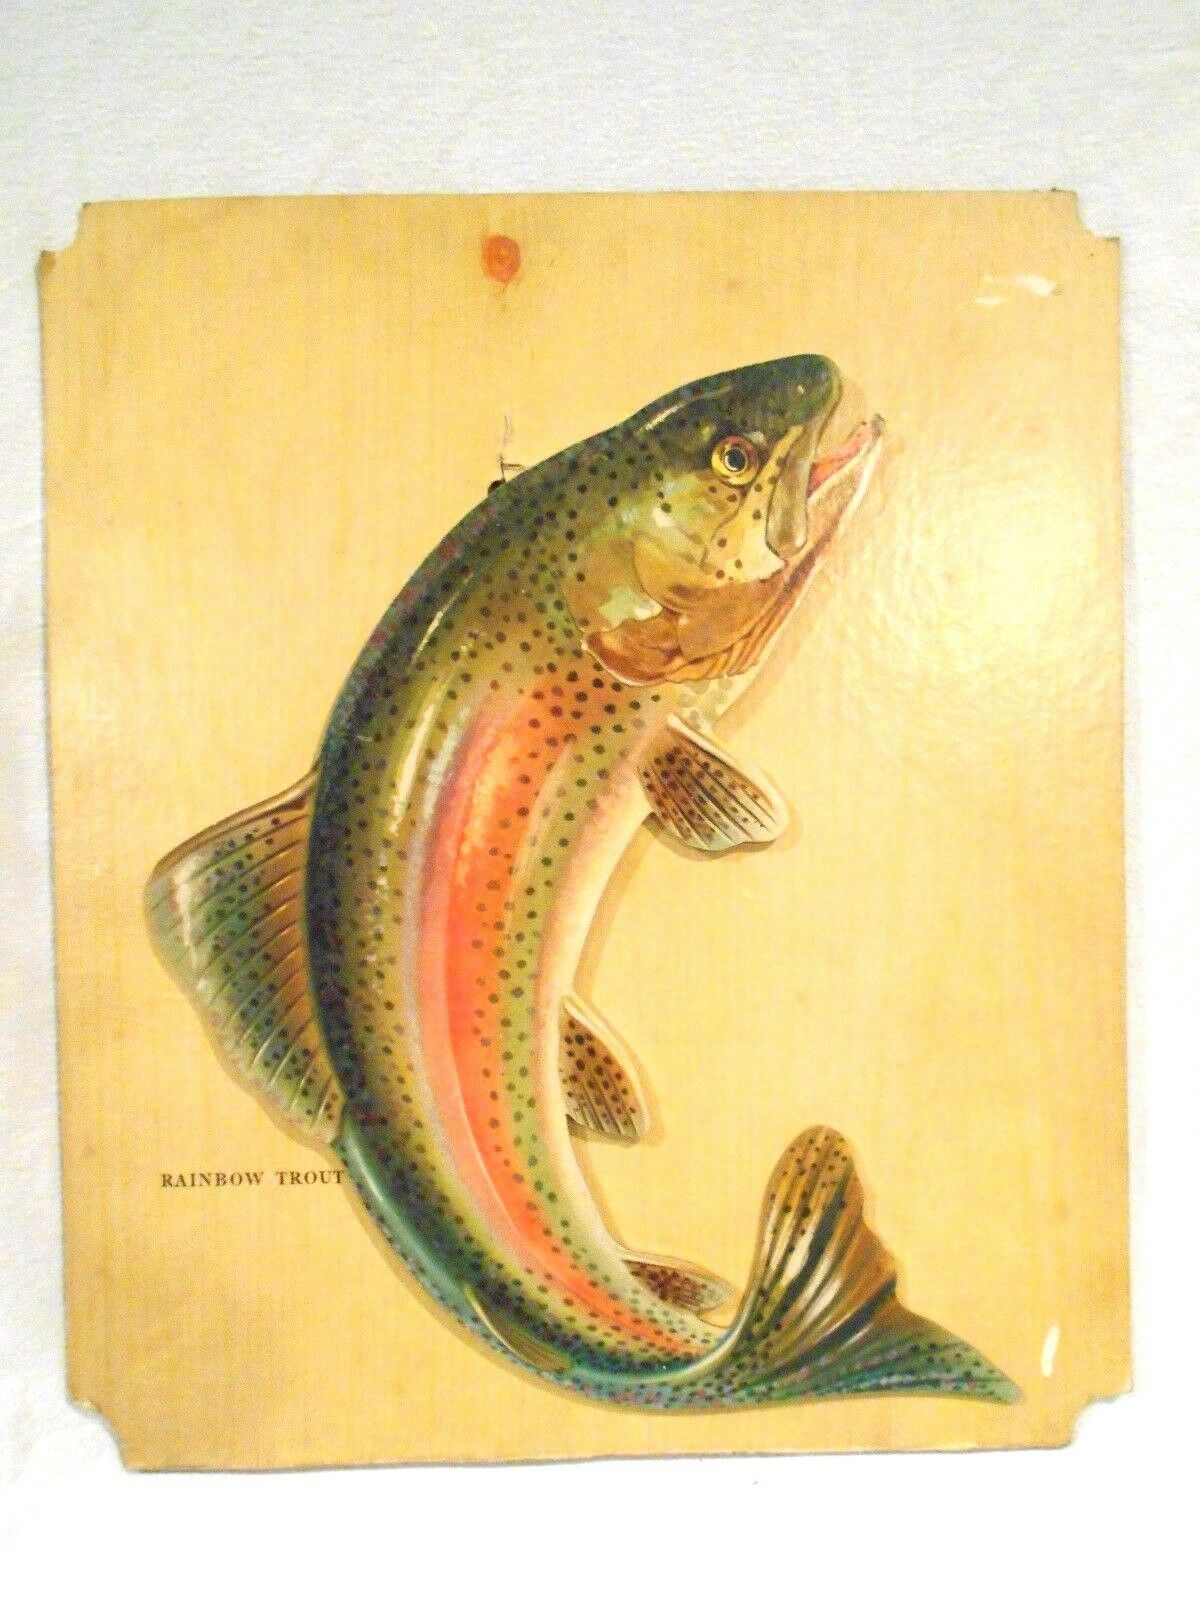 Vintage Rainbow Trout Counter Top Cardboard Wall Hanger Popout 15 x 13